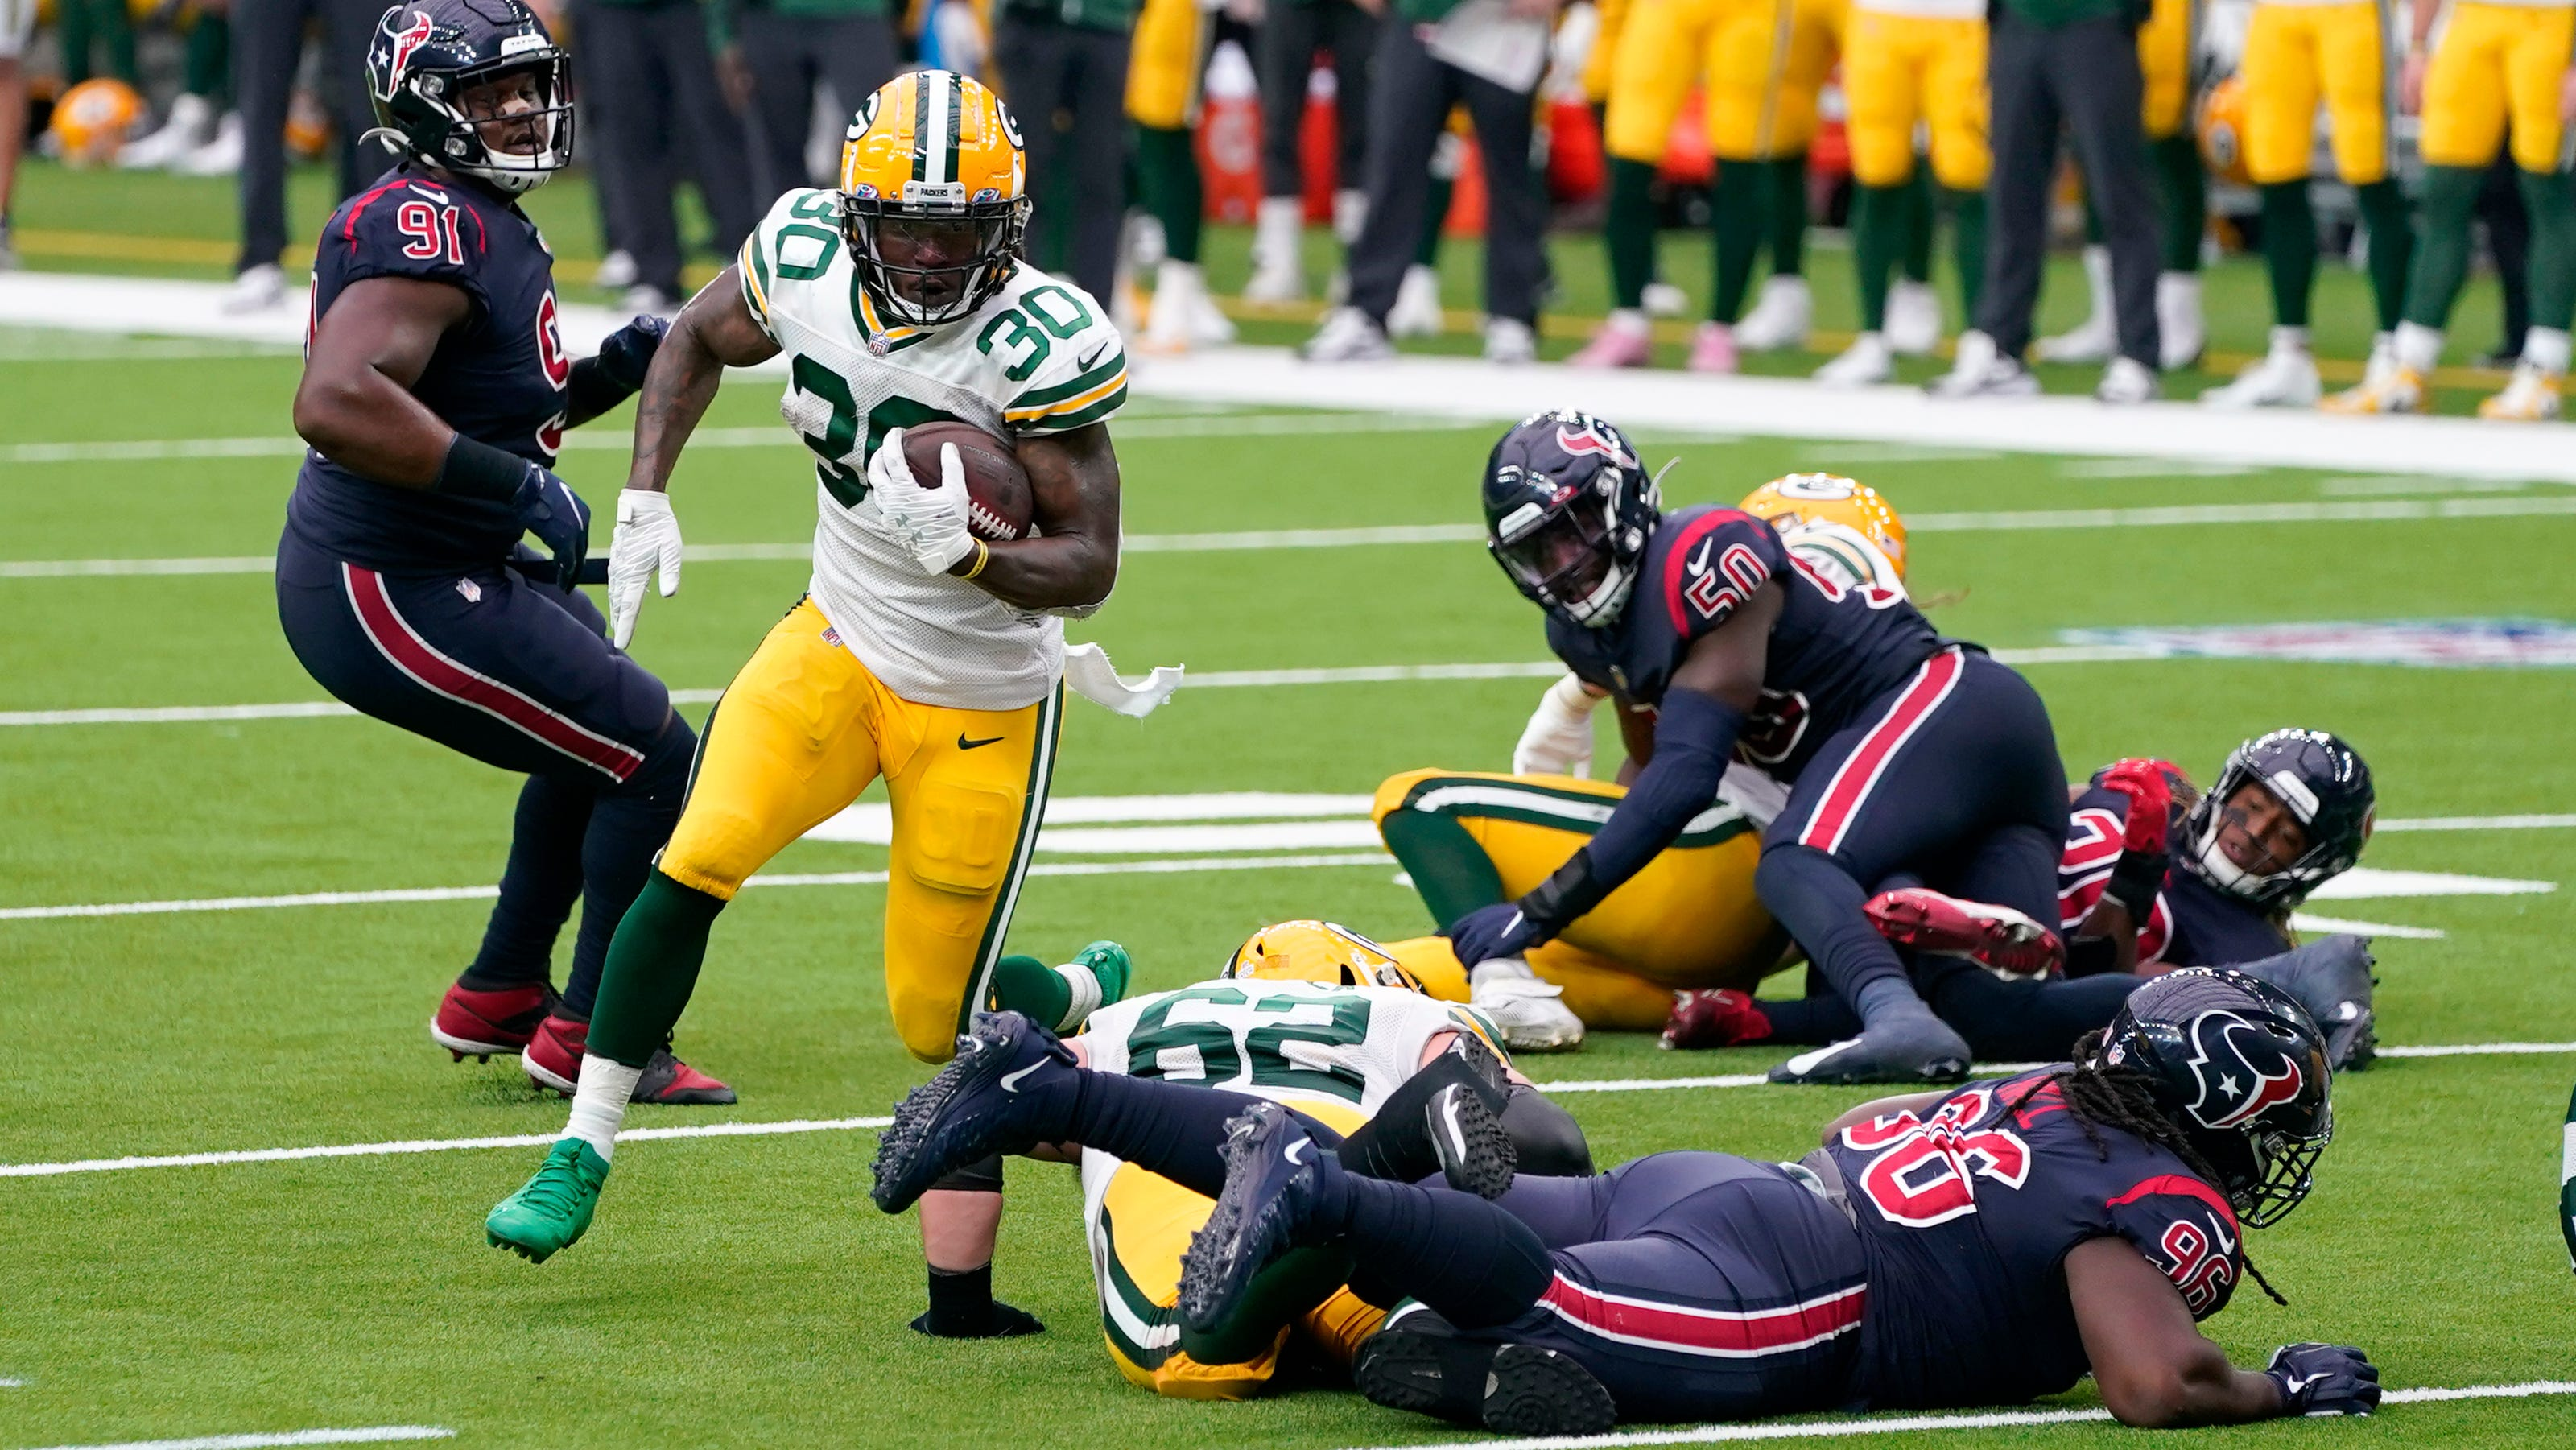 Green Bay Packers Take Their Anger And Frustration Out On Inept Texans